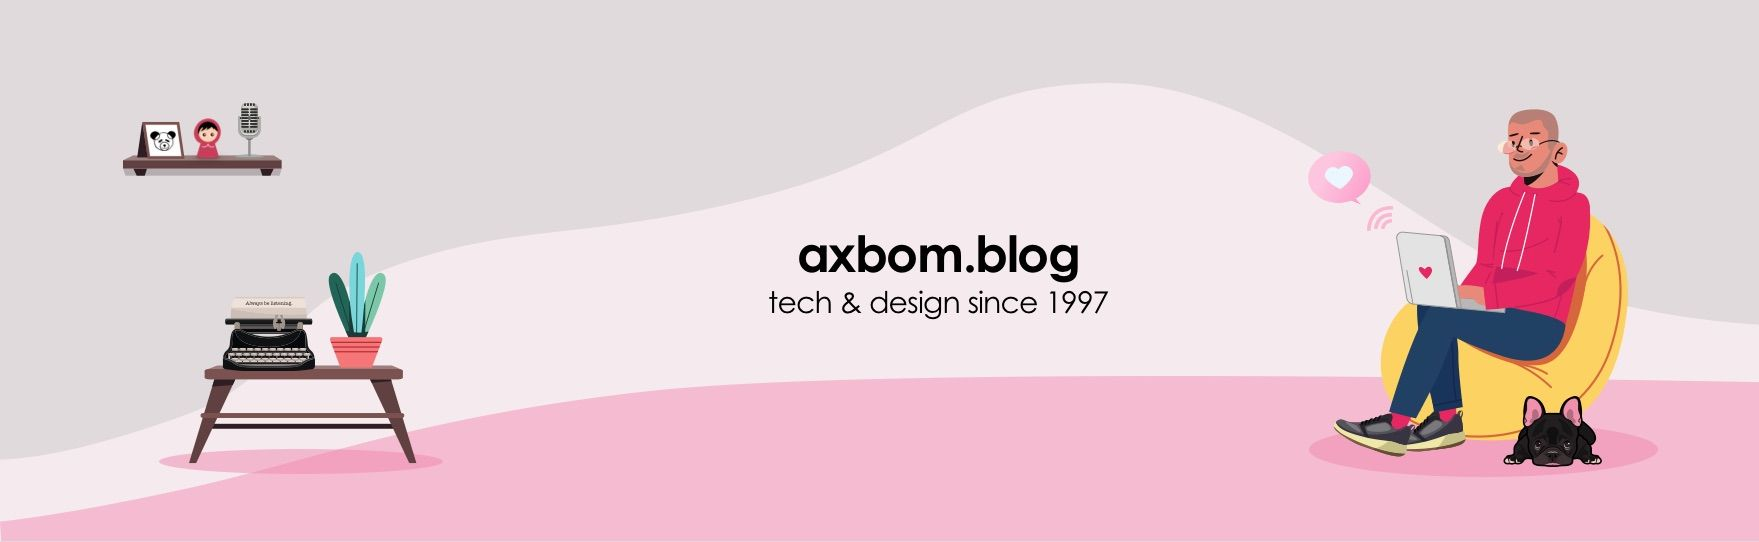 About axbom.blog